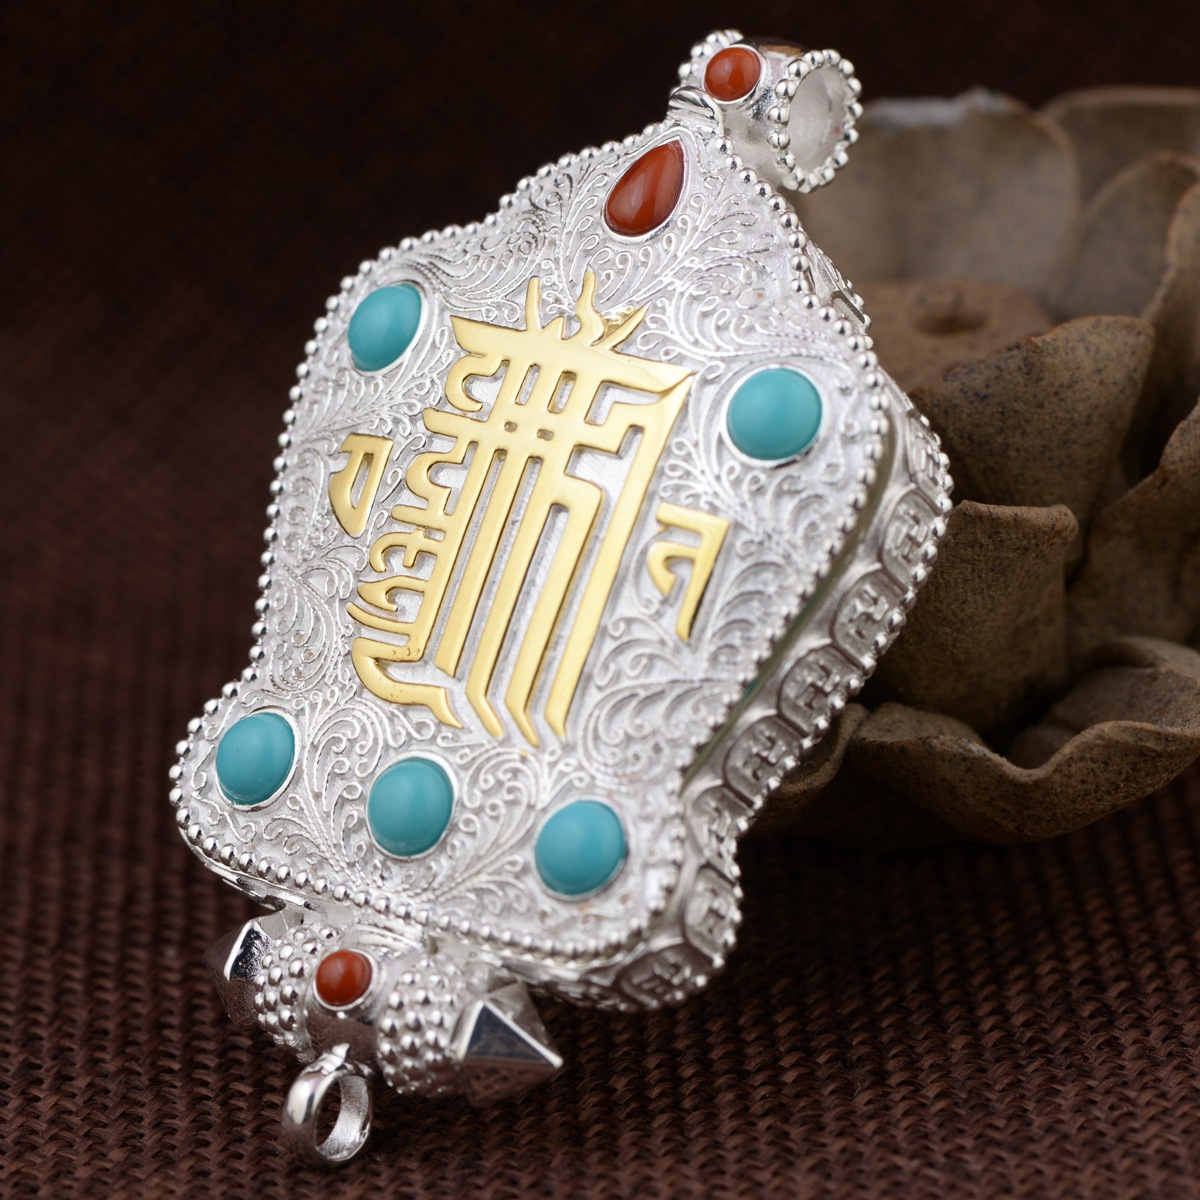 S925 silver honk the black box of Chinese knot pendant Thai silver antique style ten comfortable buddhist accessoriesS925 silver honk the black box of Chinese knot pendant Thai silver antique style ten comfortable buddhist accessories